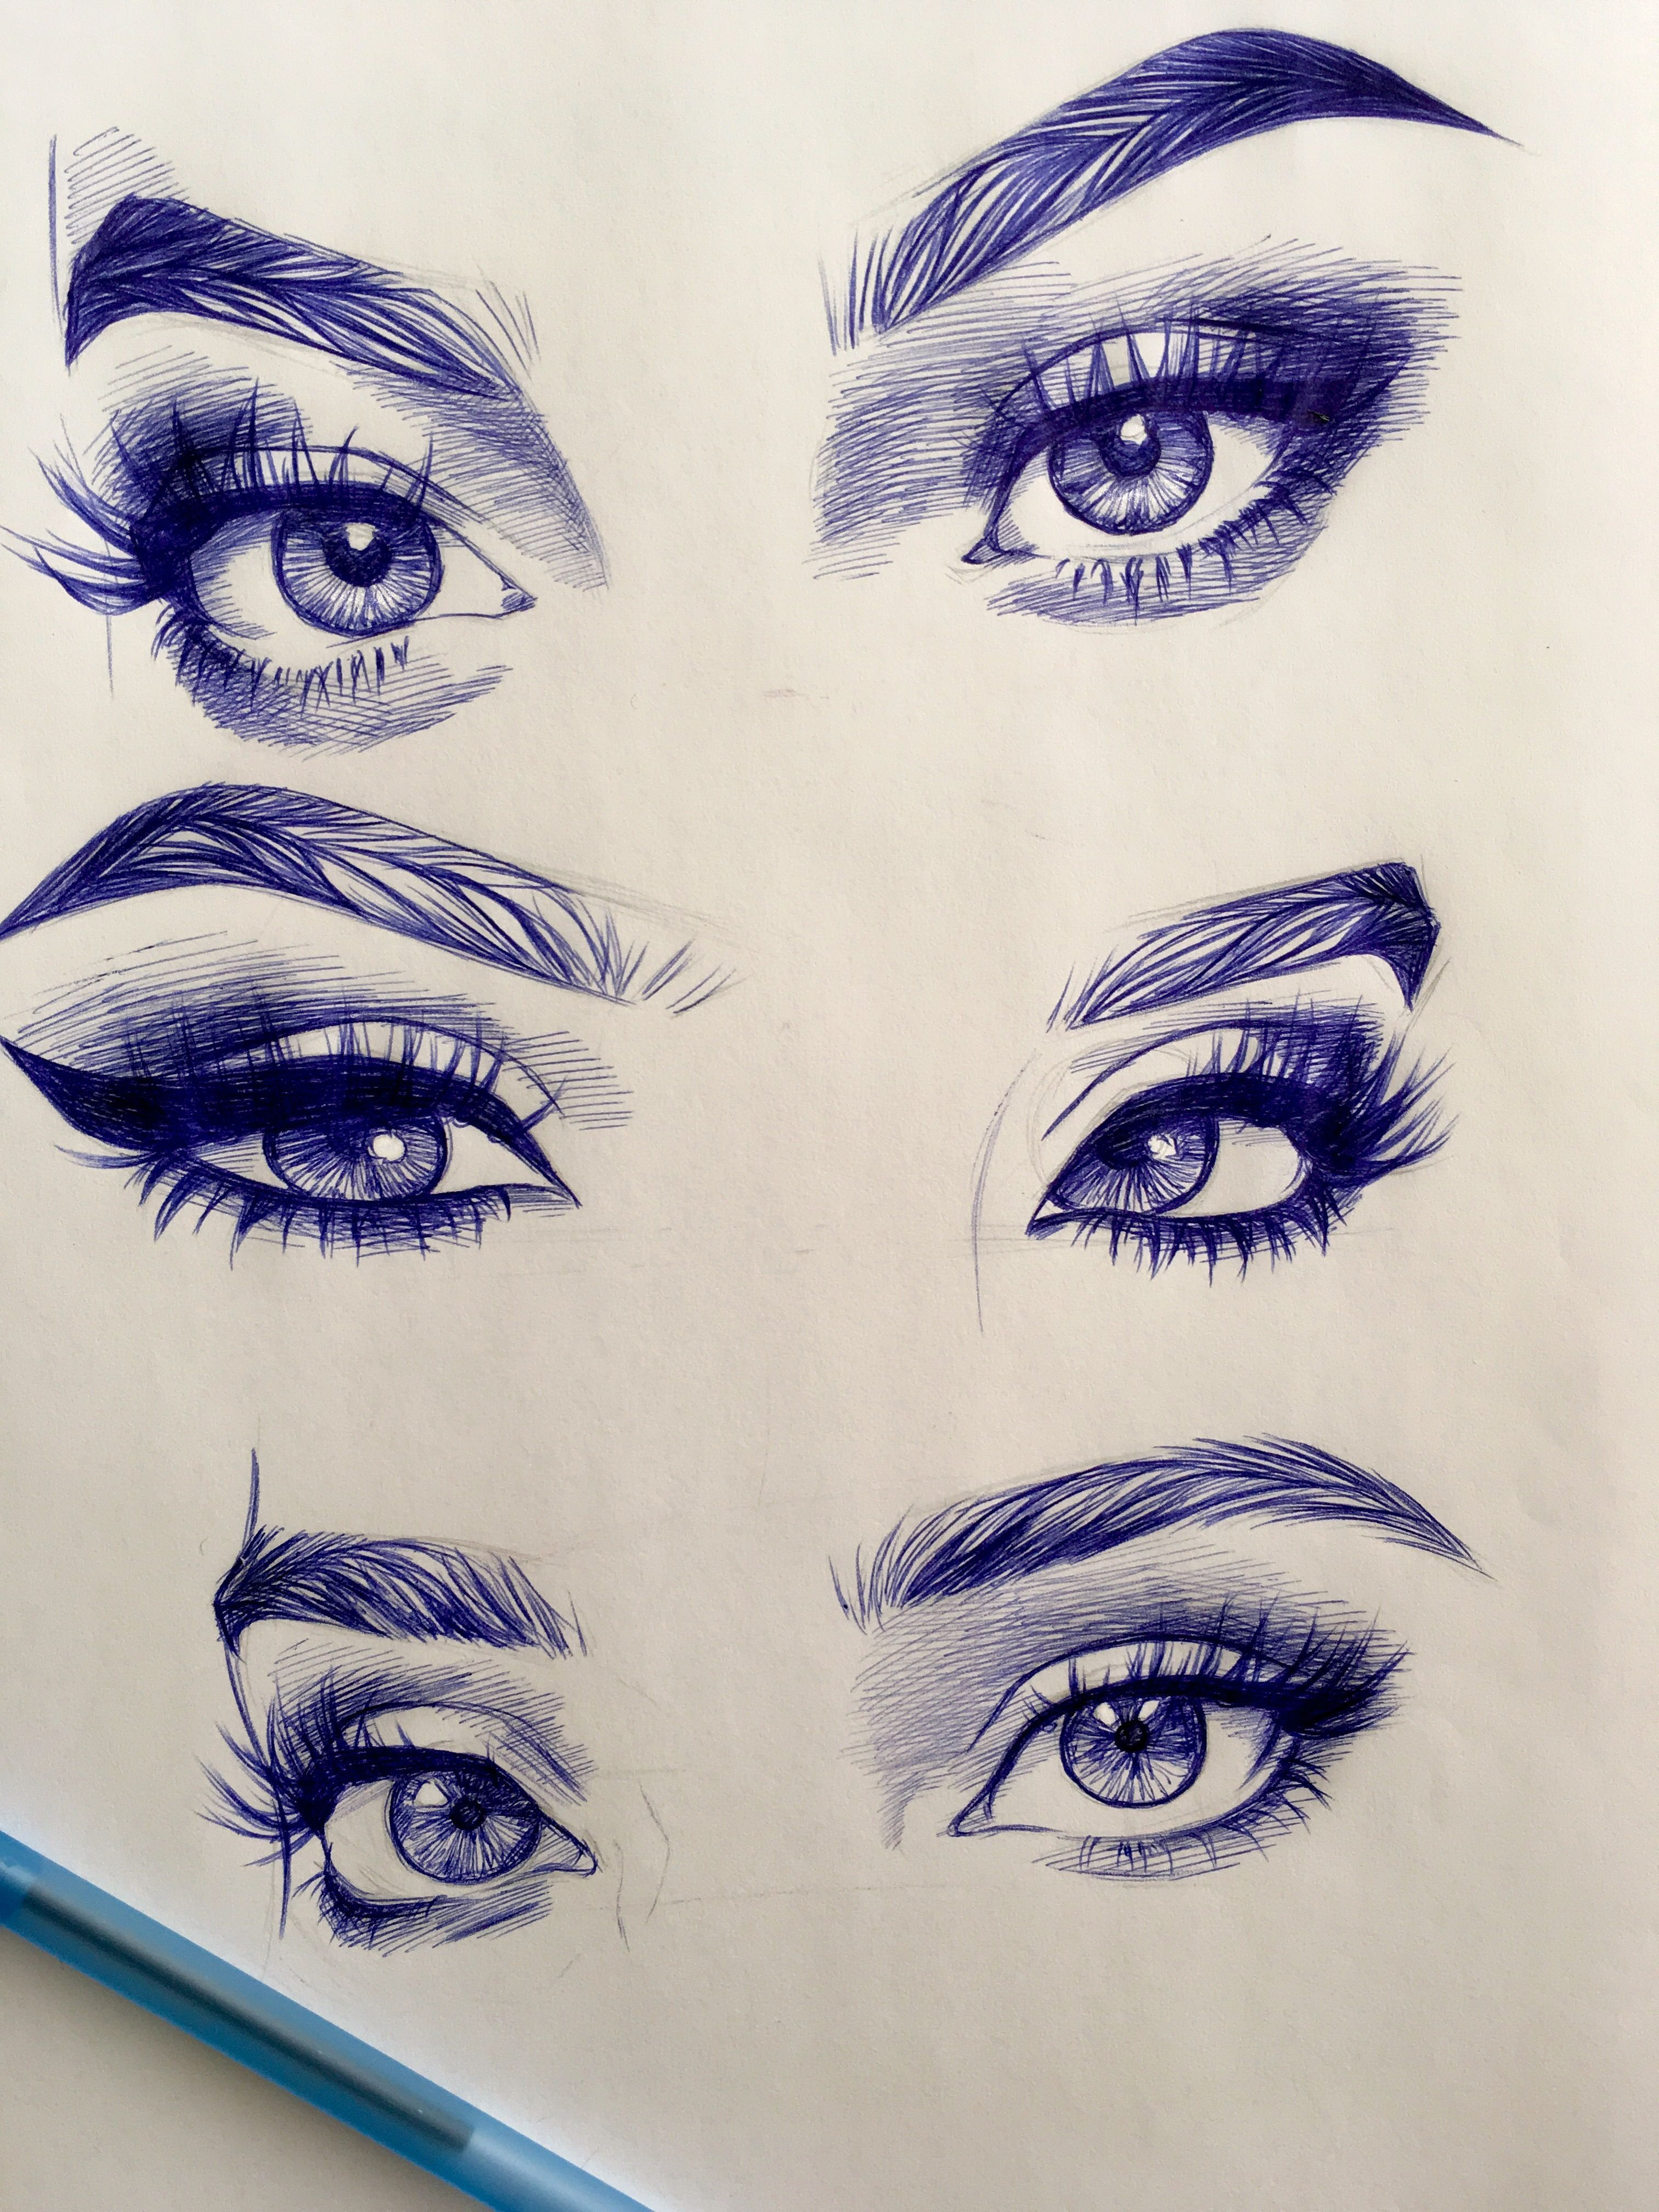 Drawing Eyes Sketch Makeup Art Eyelashes Easy Beginners Eyelashes